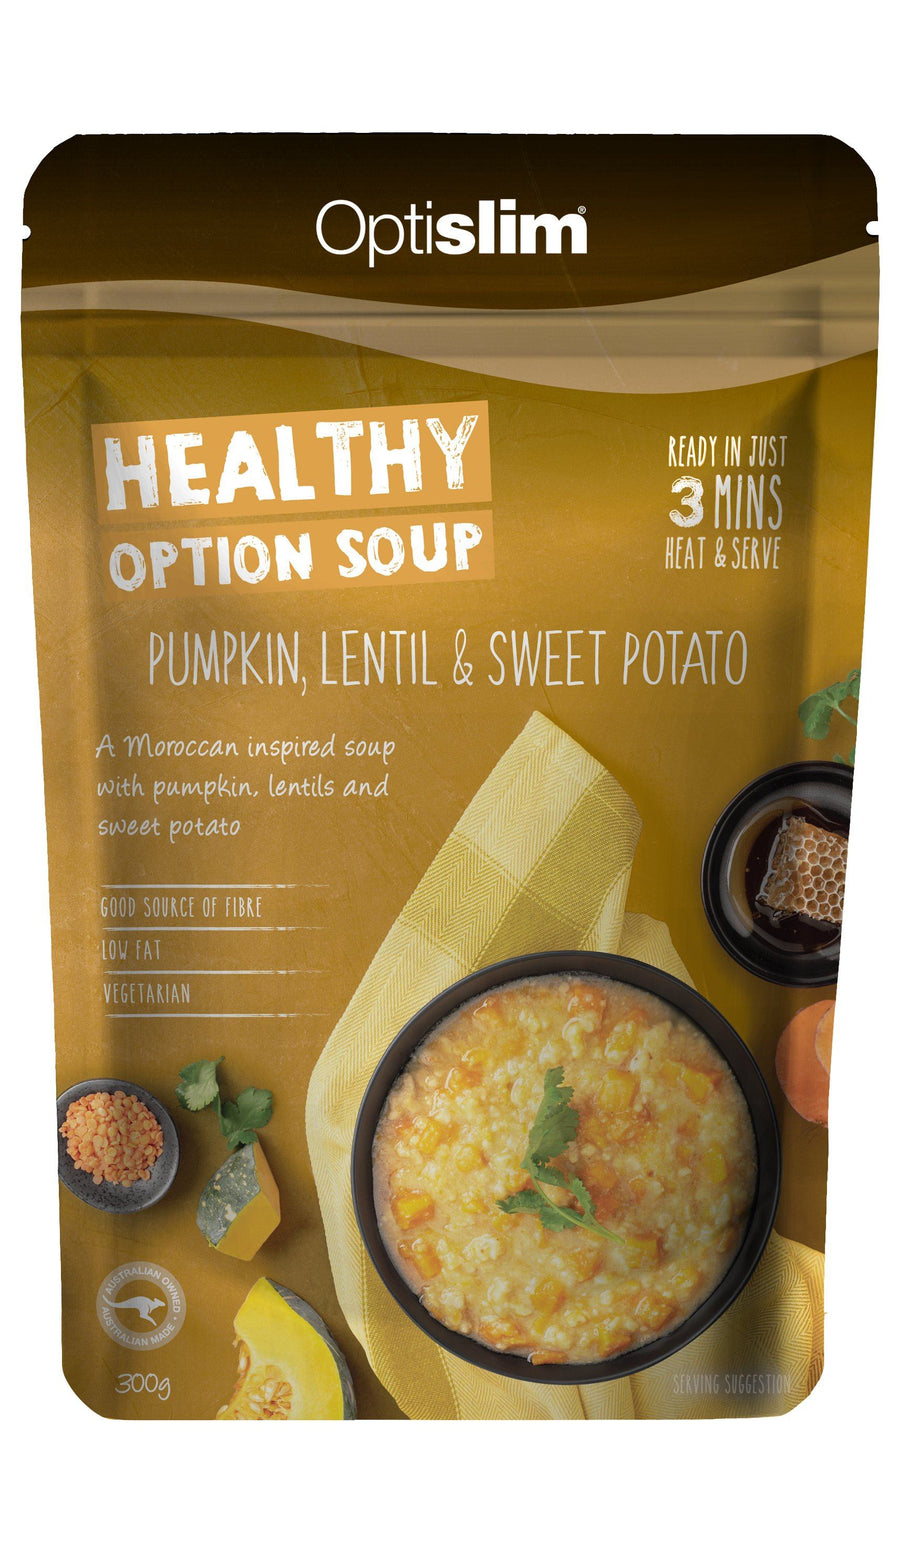 Healthy Option Soup Pumpkin, Lentil and Sweet Potato Weight Loss OptiSlim